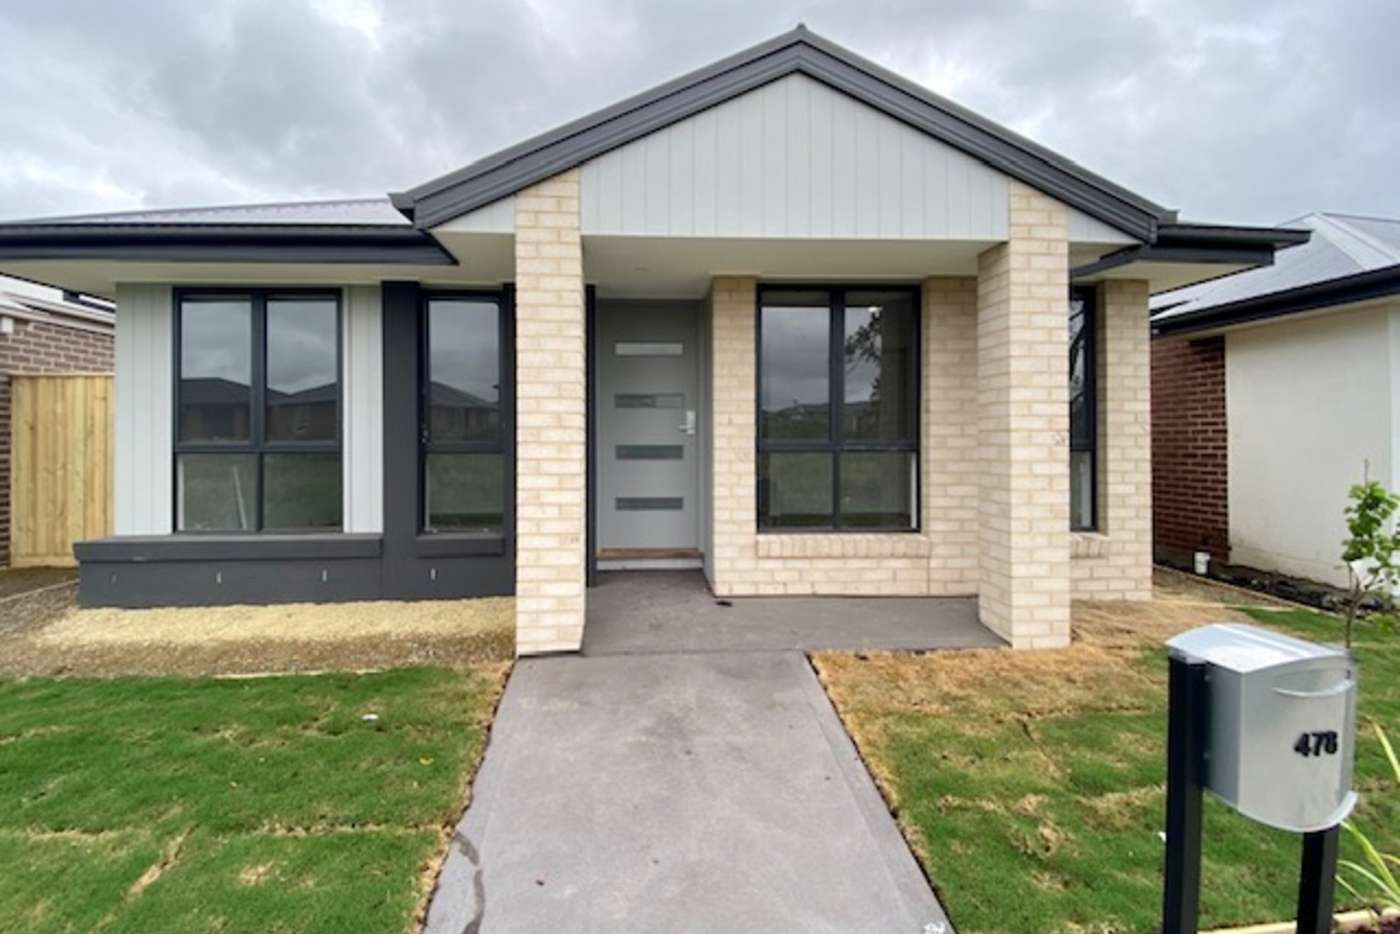 Main view of Homely house listing, 478 Casey Fields Boulevard, Cranbourne East VIC 3977